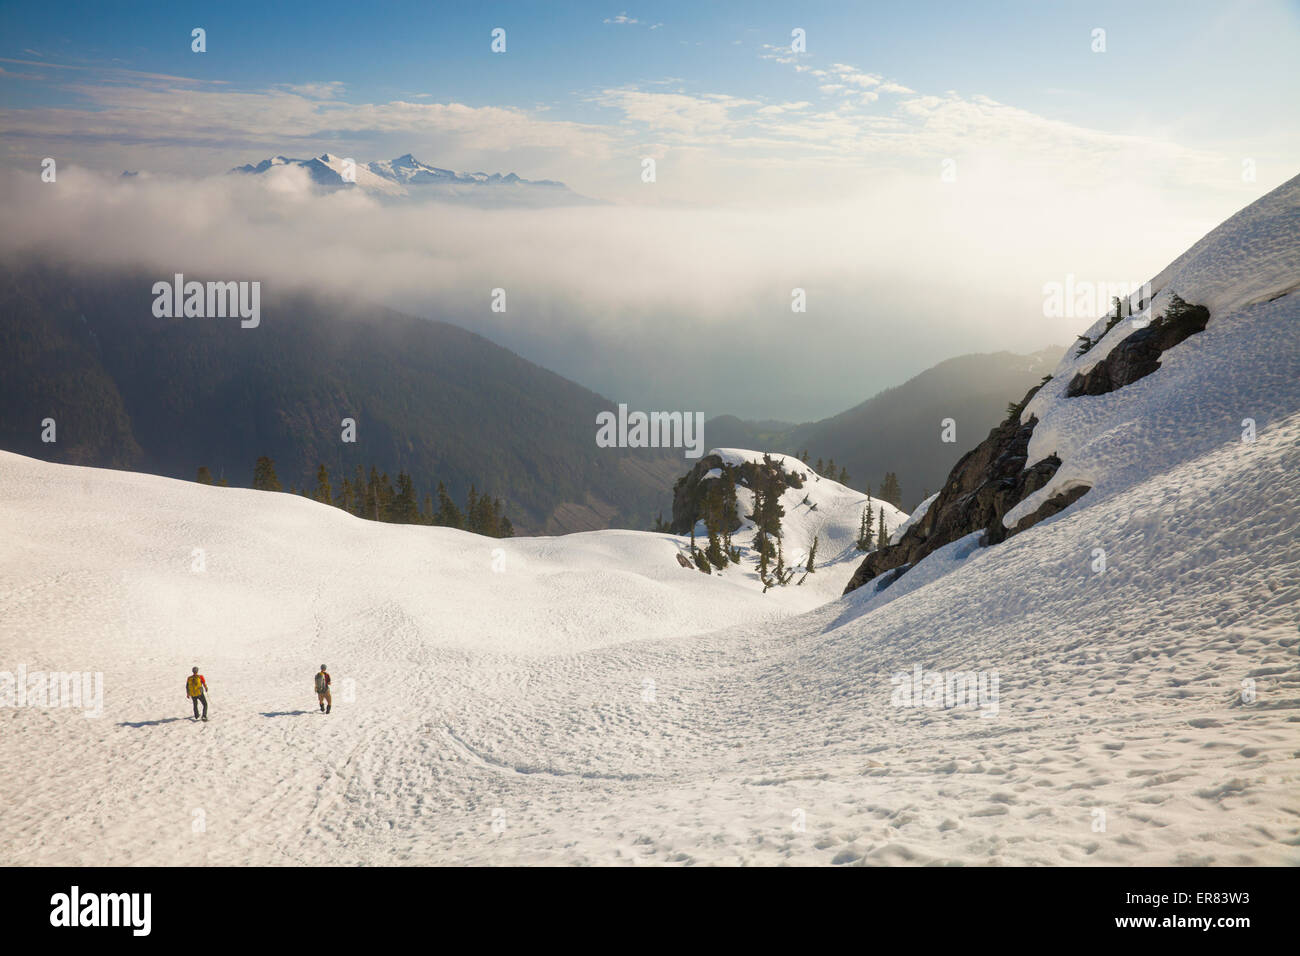 Two climbers descend a snowfield after a trip into the mountains. - Stock Image